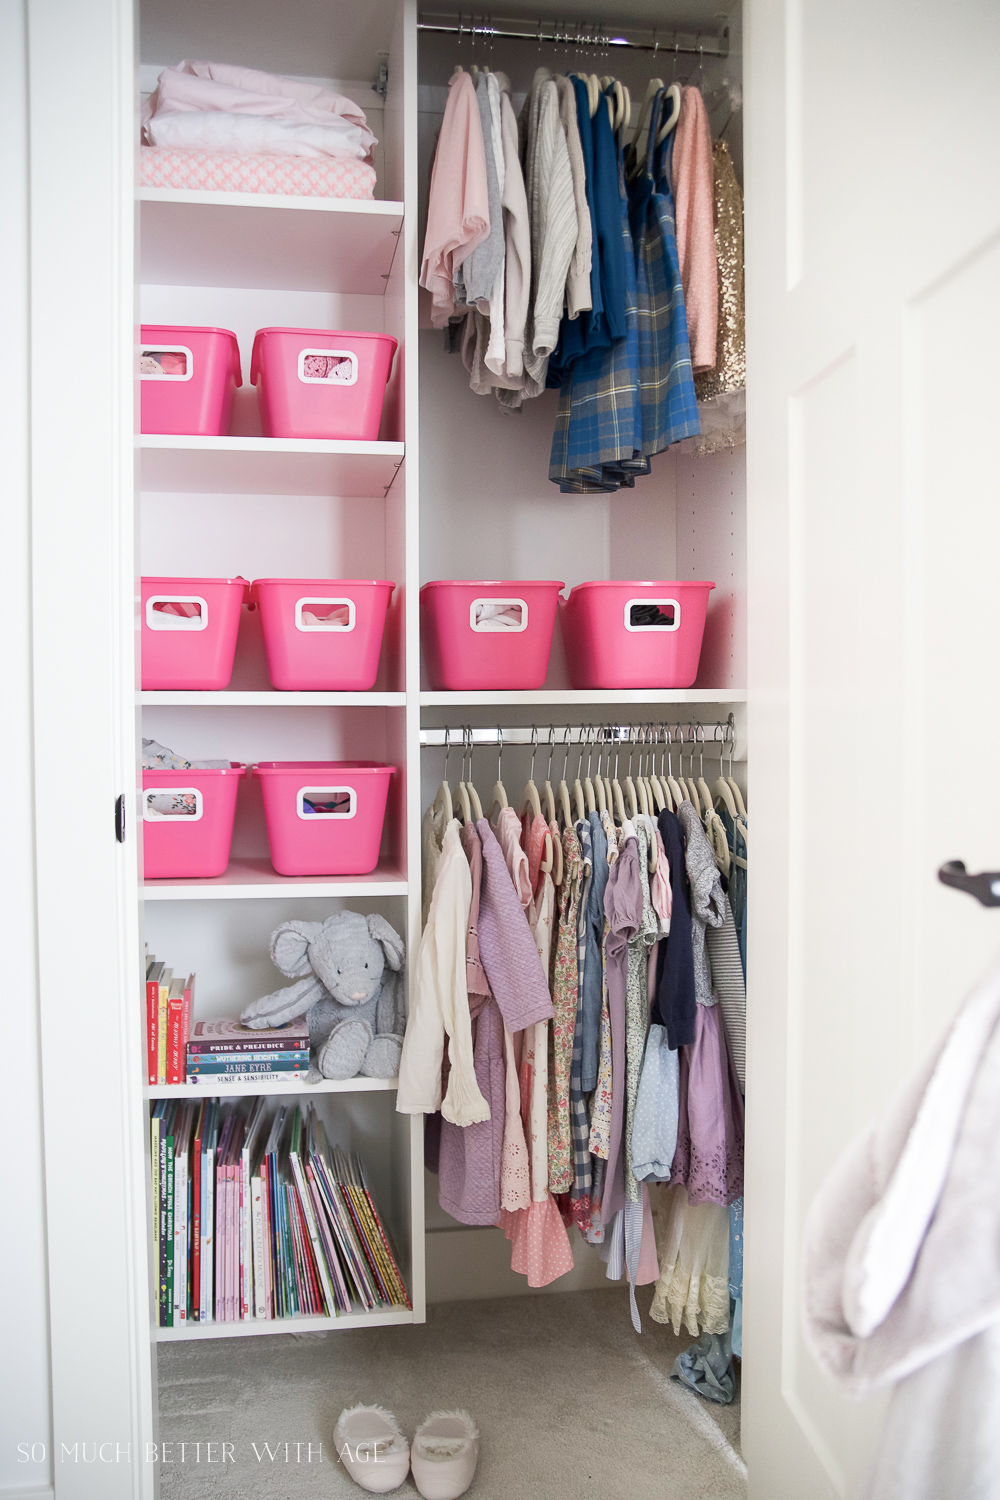 Kids Closet Organization with Dollar Store Bins/pink bins in closet - So Much Better With Age